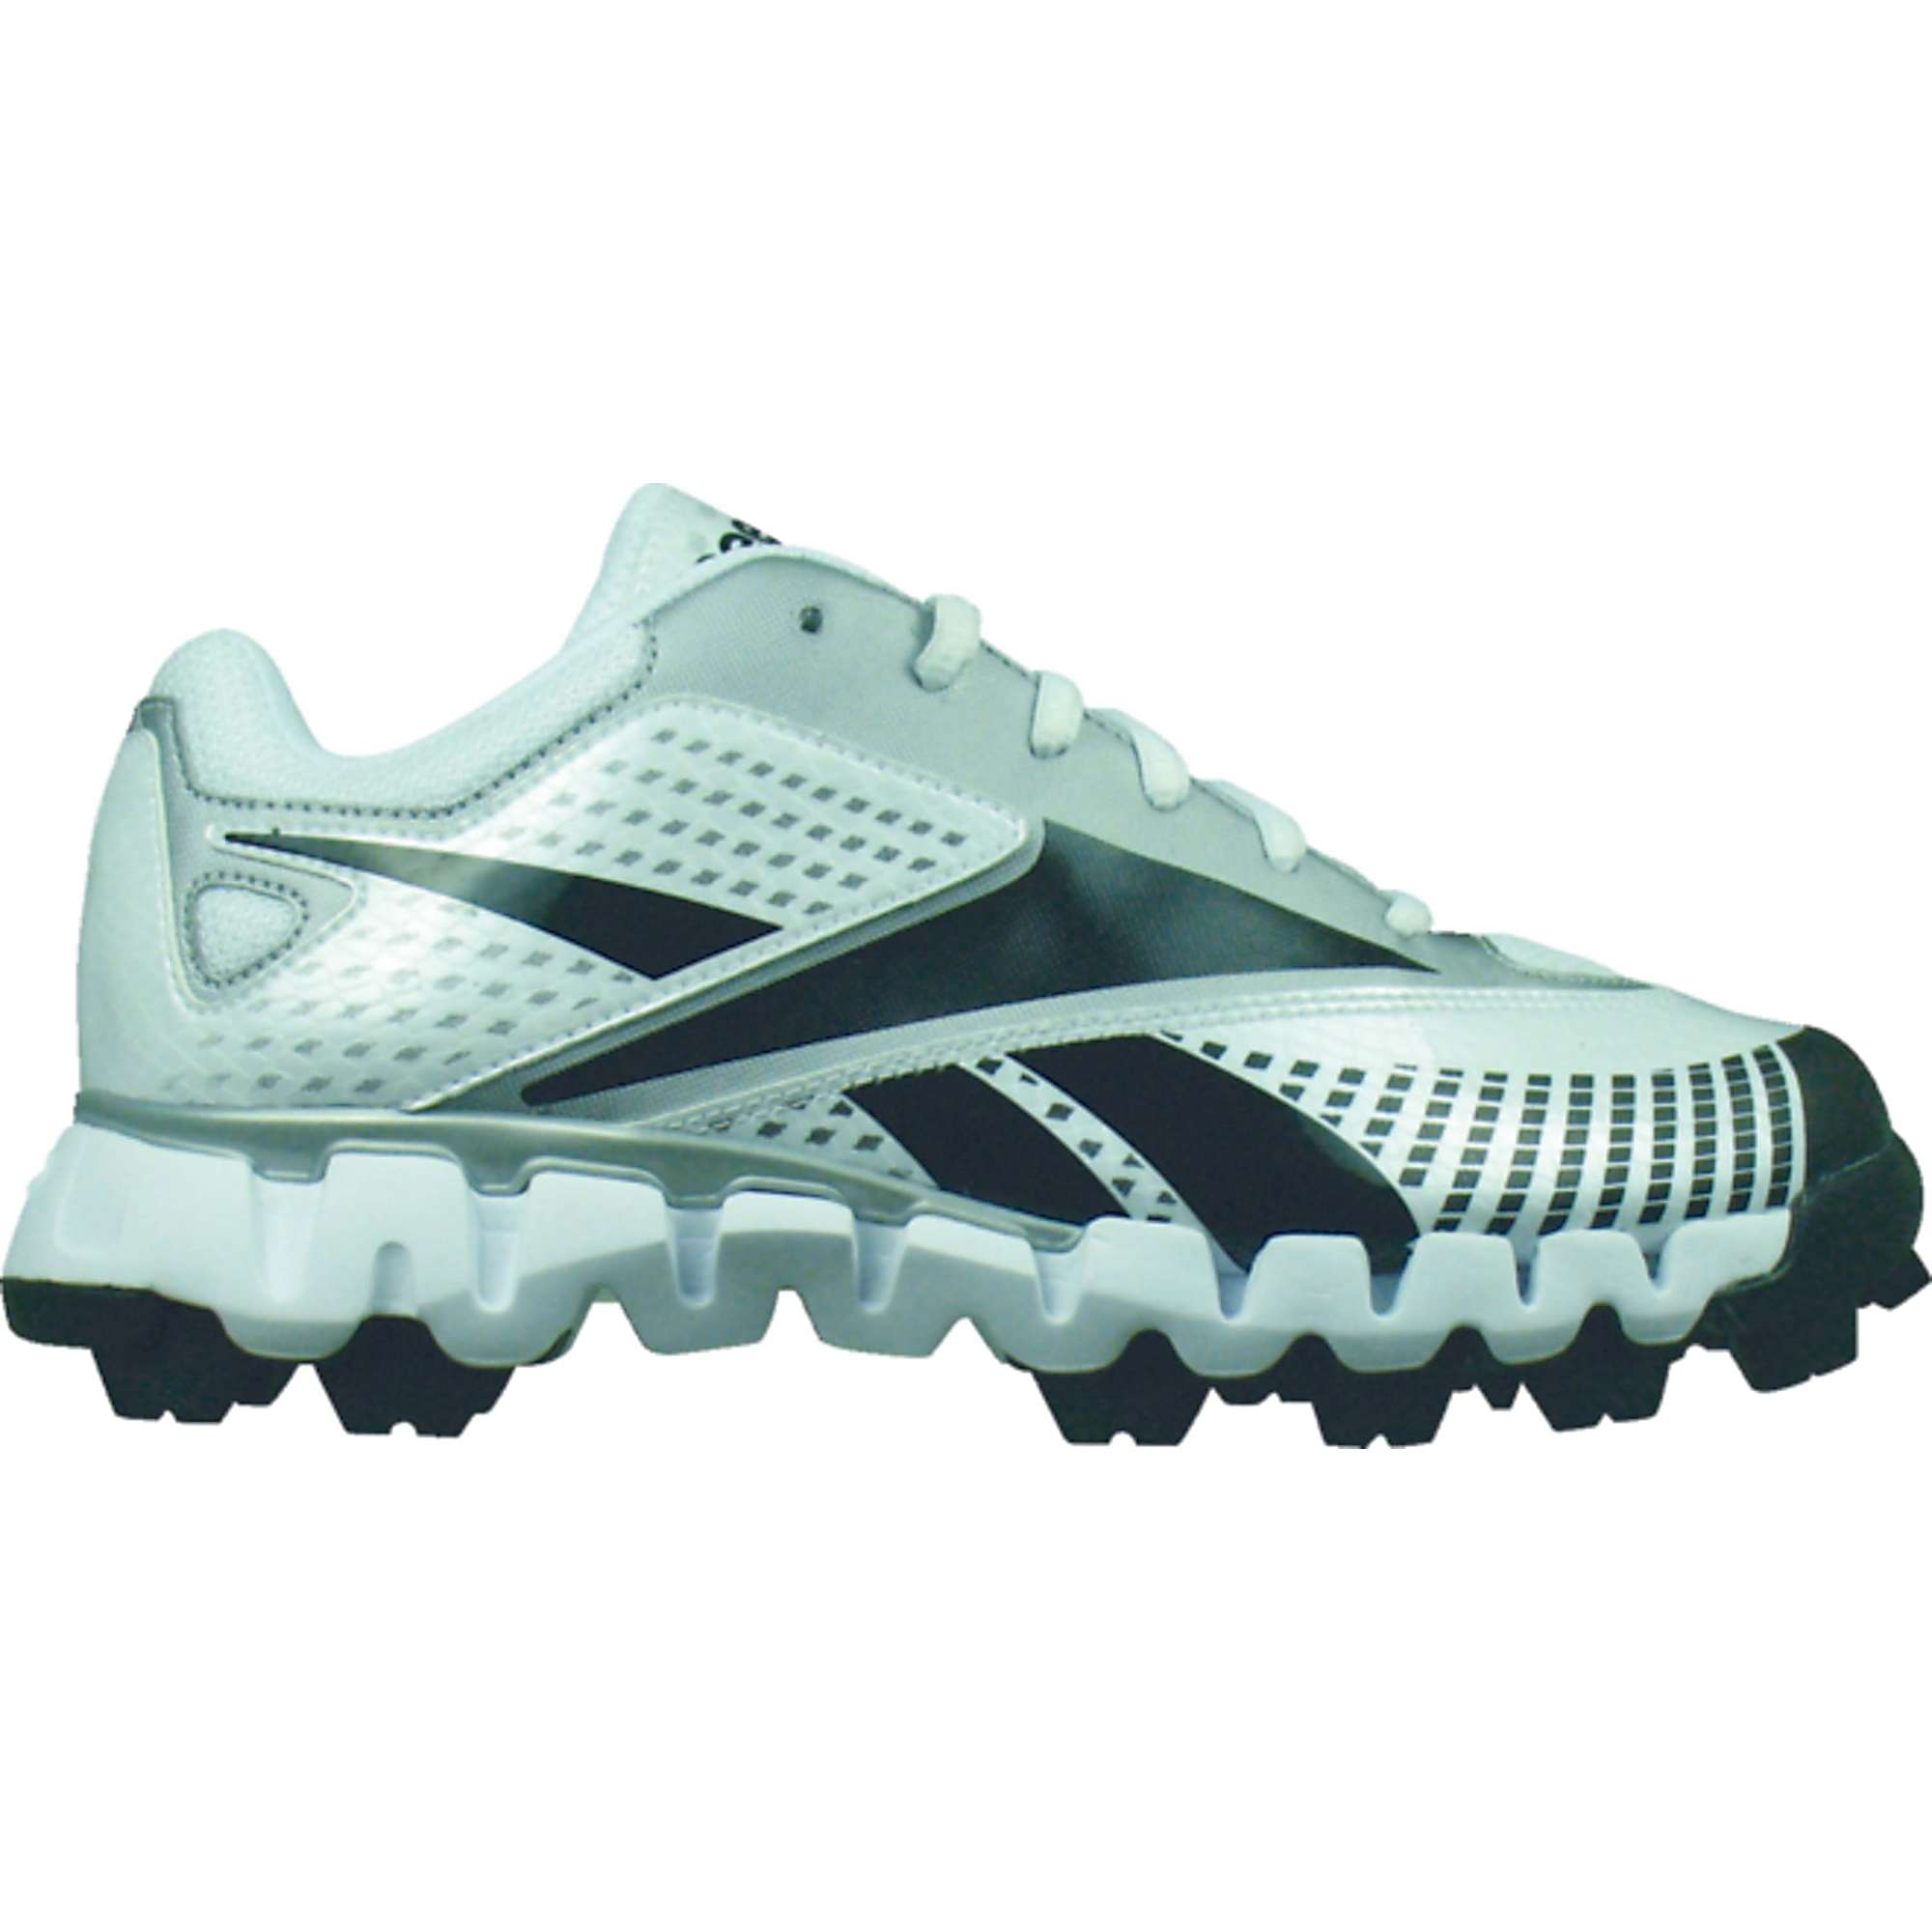 Cool Molded Baseball Cleats Molded-baseball-cleat